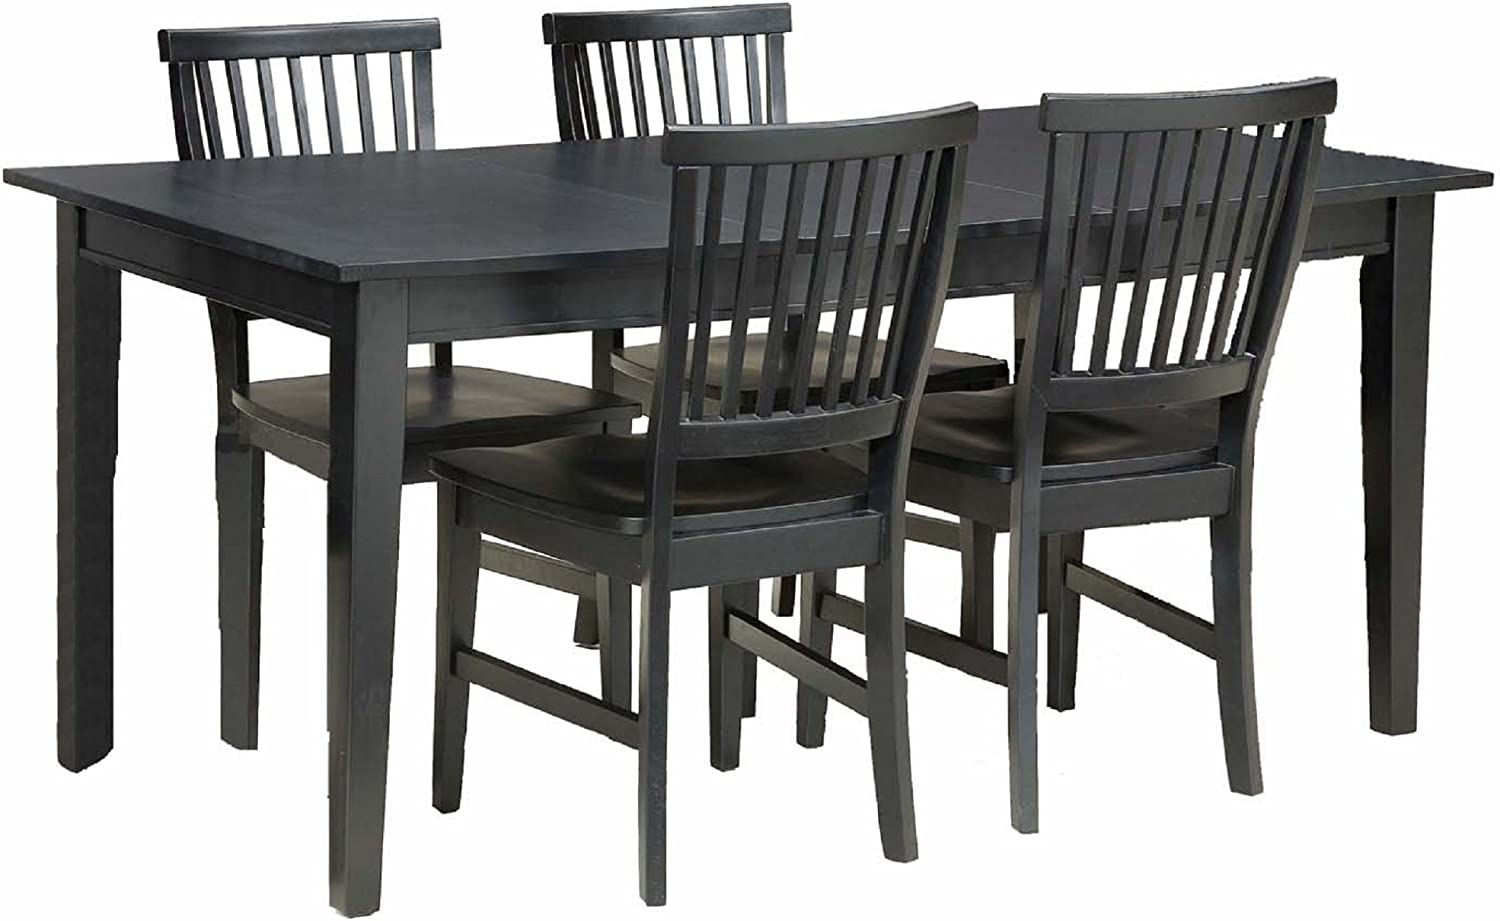 Home Styles Arts and Crafts Black Five-piece Rectangular Dining Set with Four Chairs, Multi-step Black Finish, and Solid Hardwood Construction